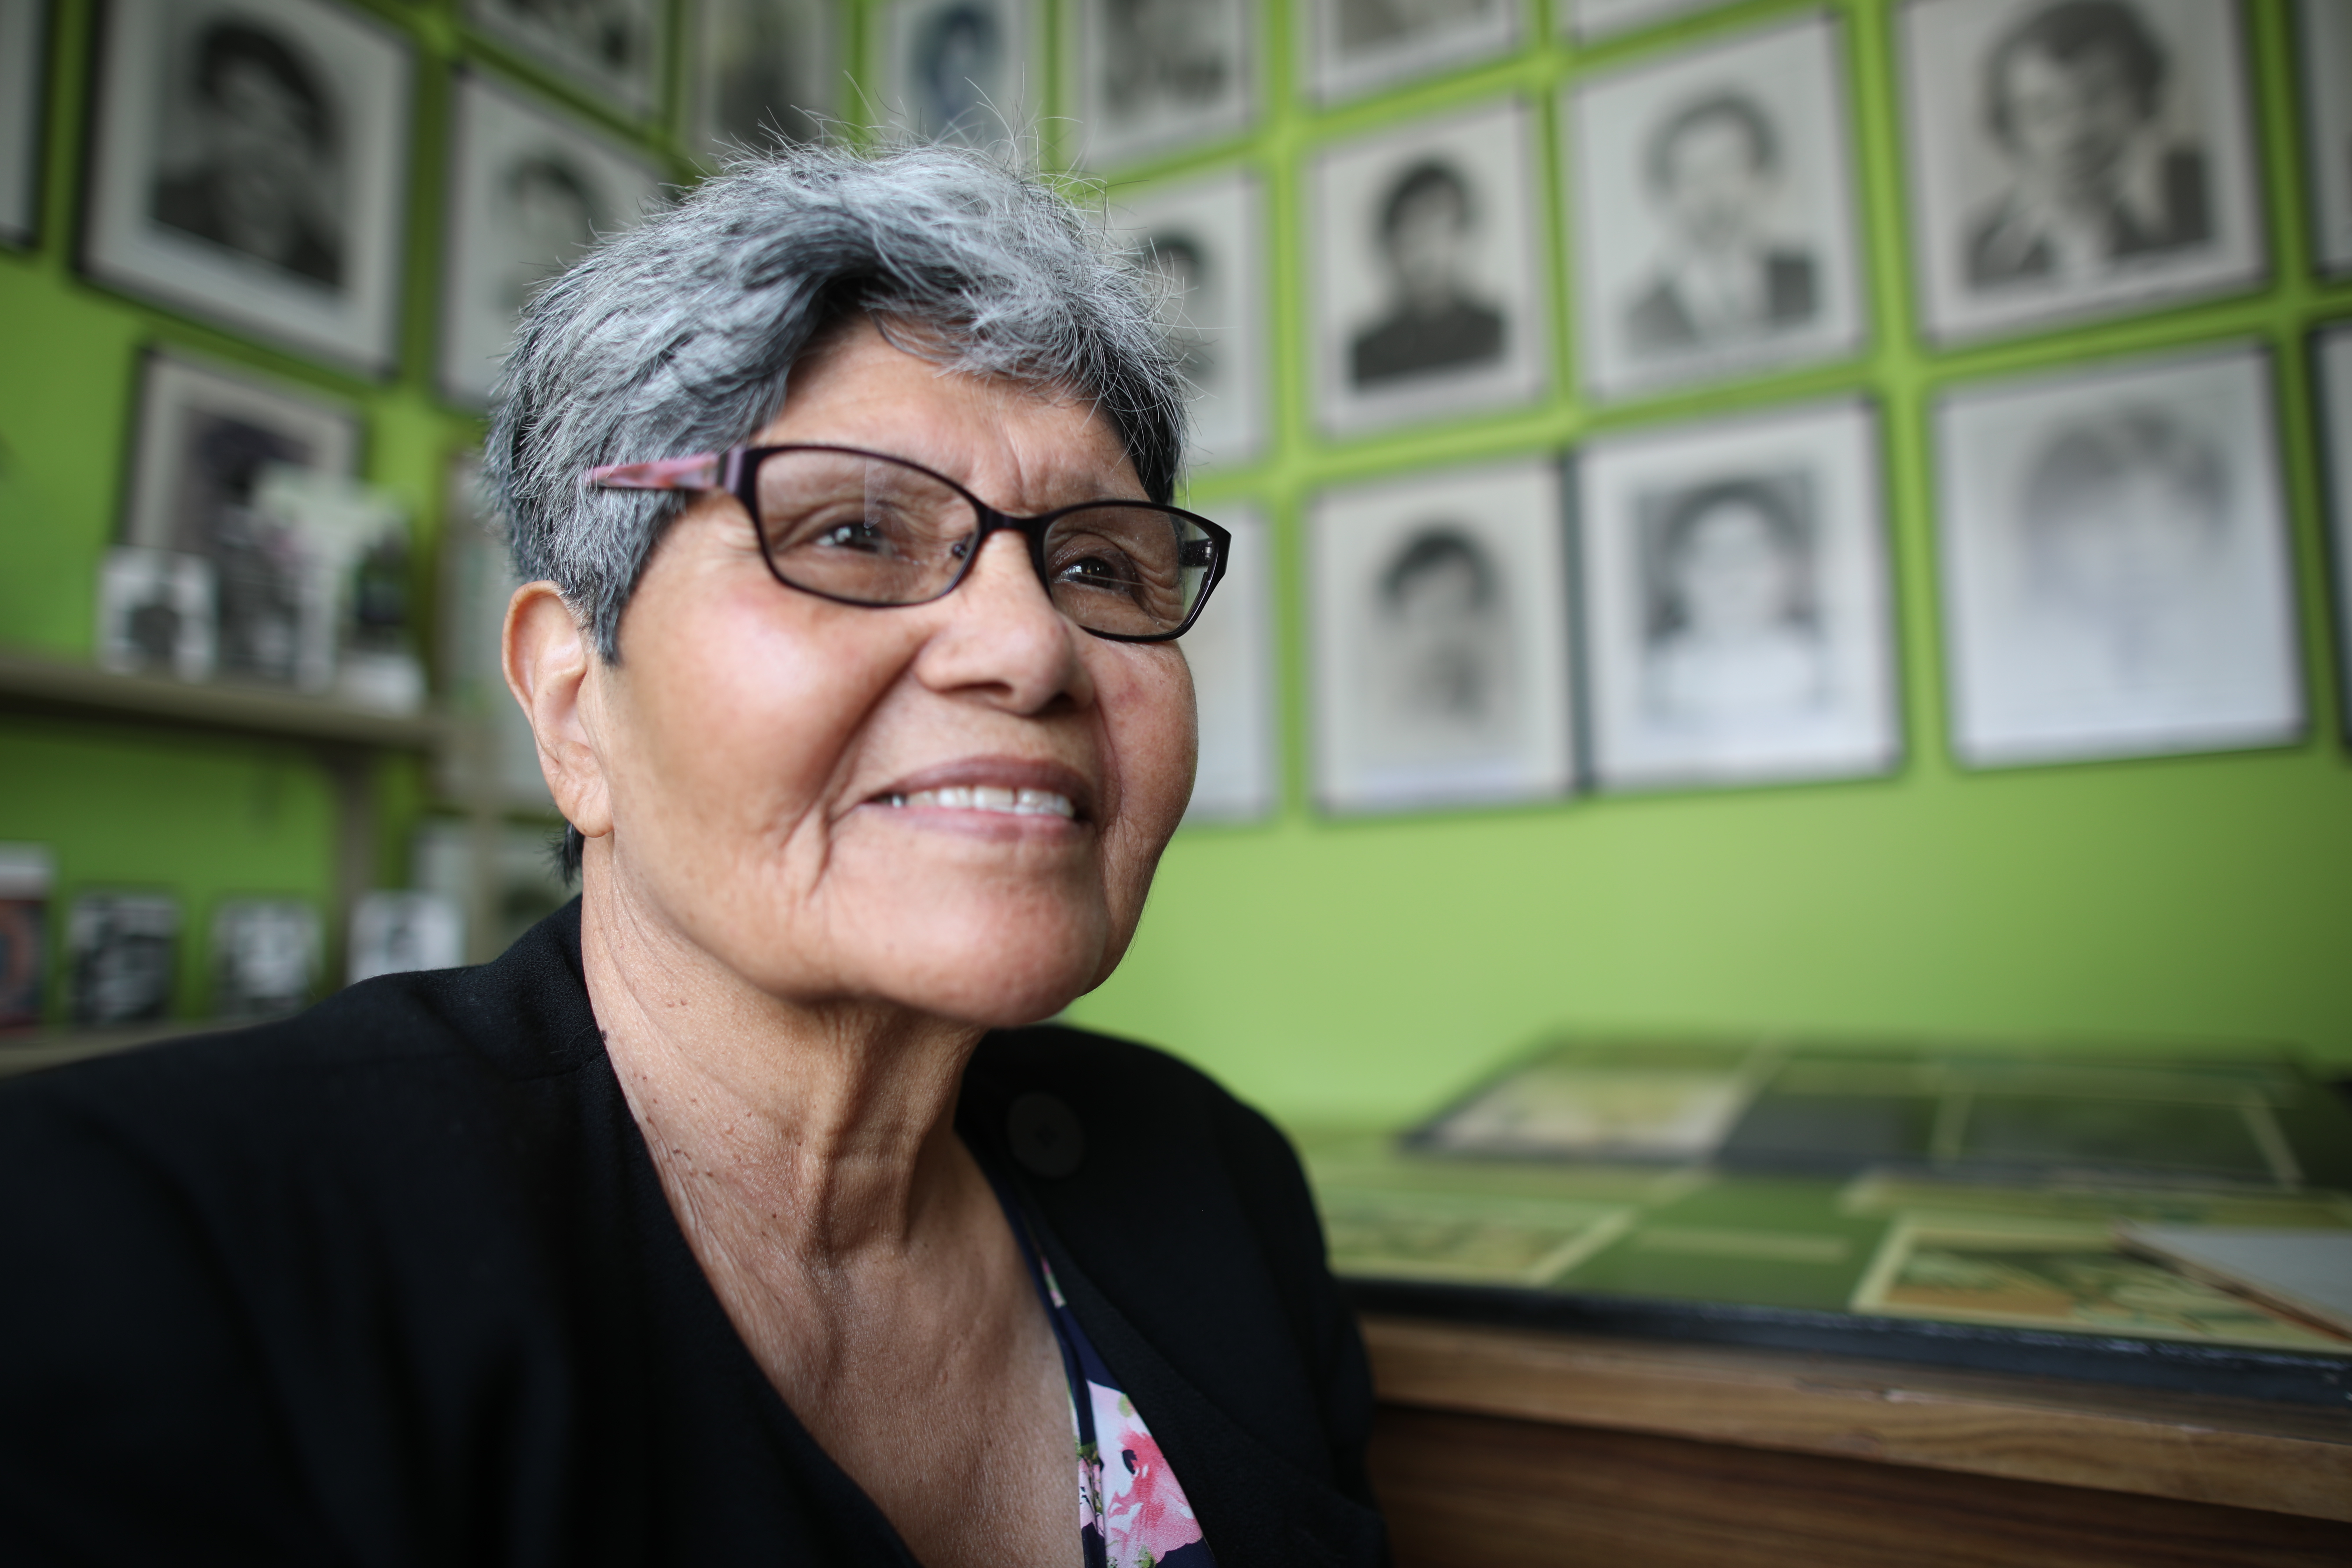 Aura Elena Farfan was the first person to actively investigate the Dos Erres massacre, about 12 years after it took place. (Ousama Farag/CBC)